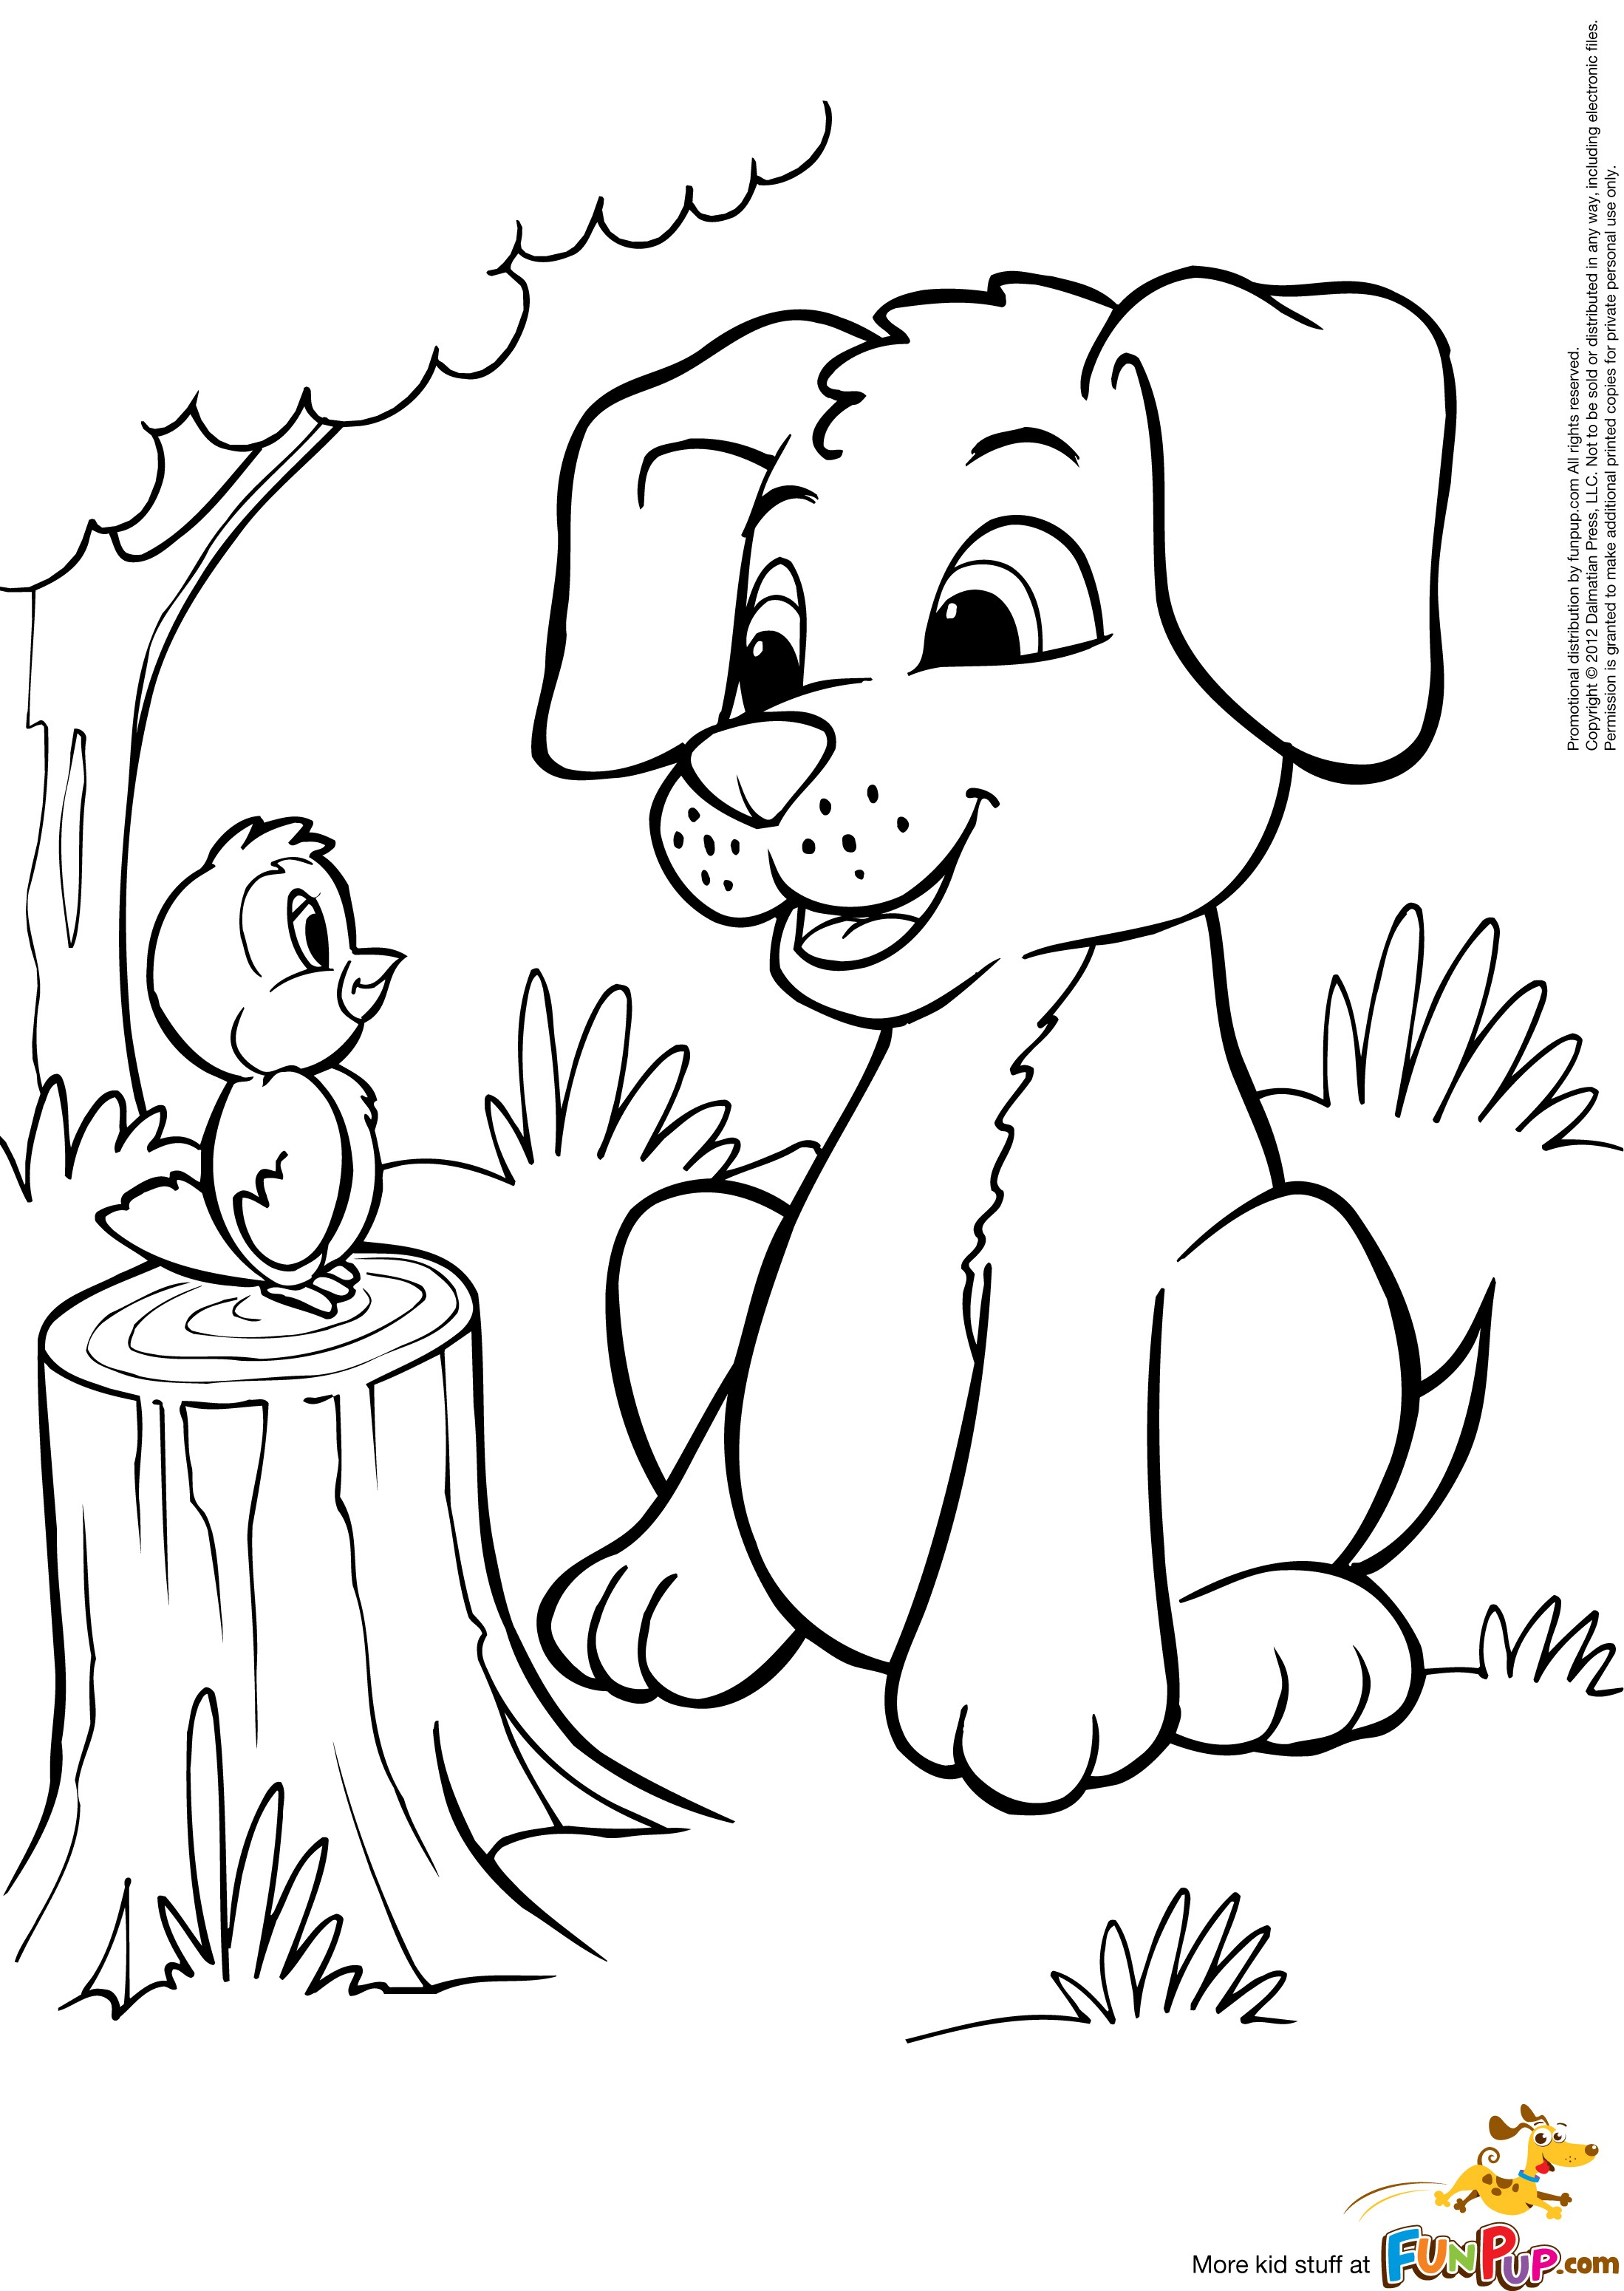 Puppy Step By Step Drawing at GetDrawings.com | Free for personal ...